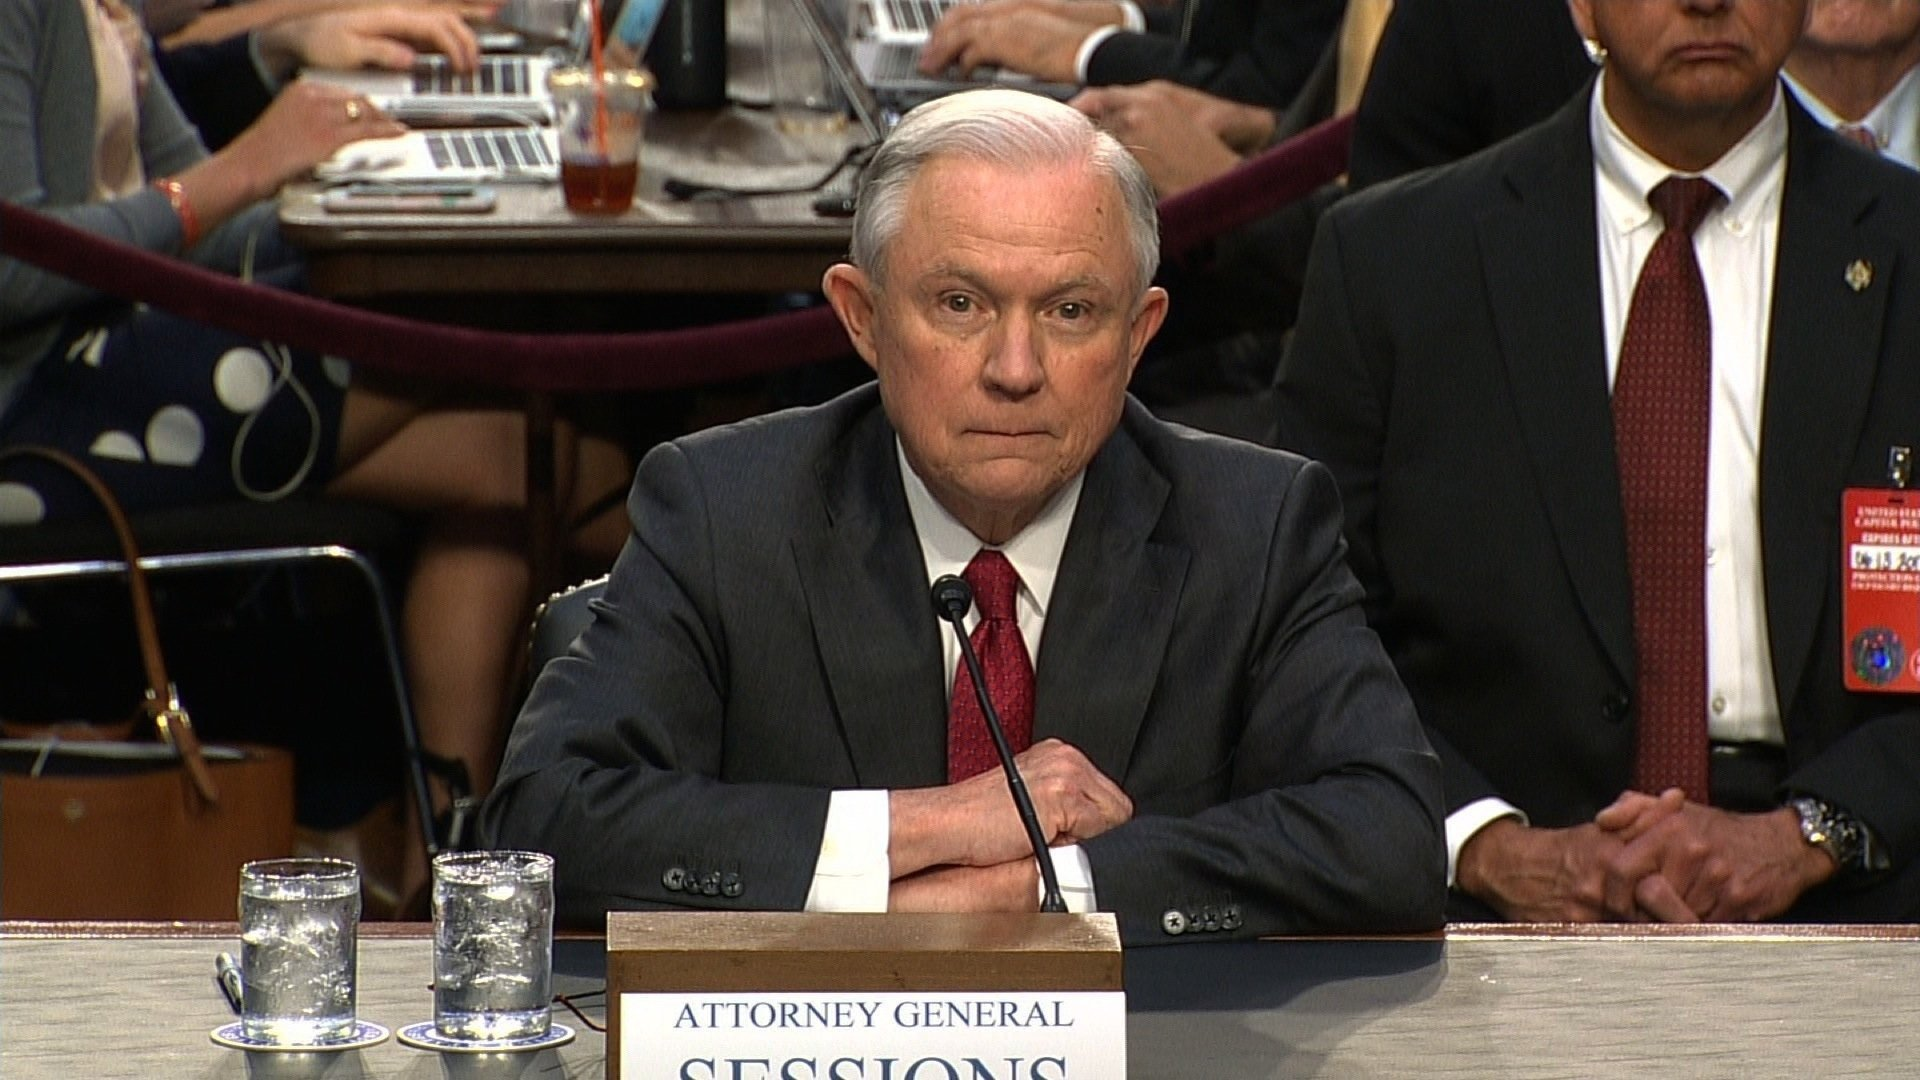 Jeff Sessions 'to Deny Third Meeting With Russian Ambassador' in Senate Hearing